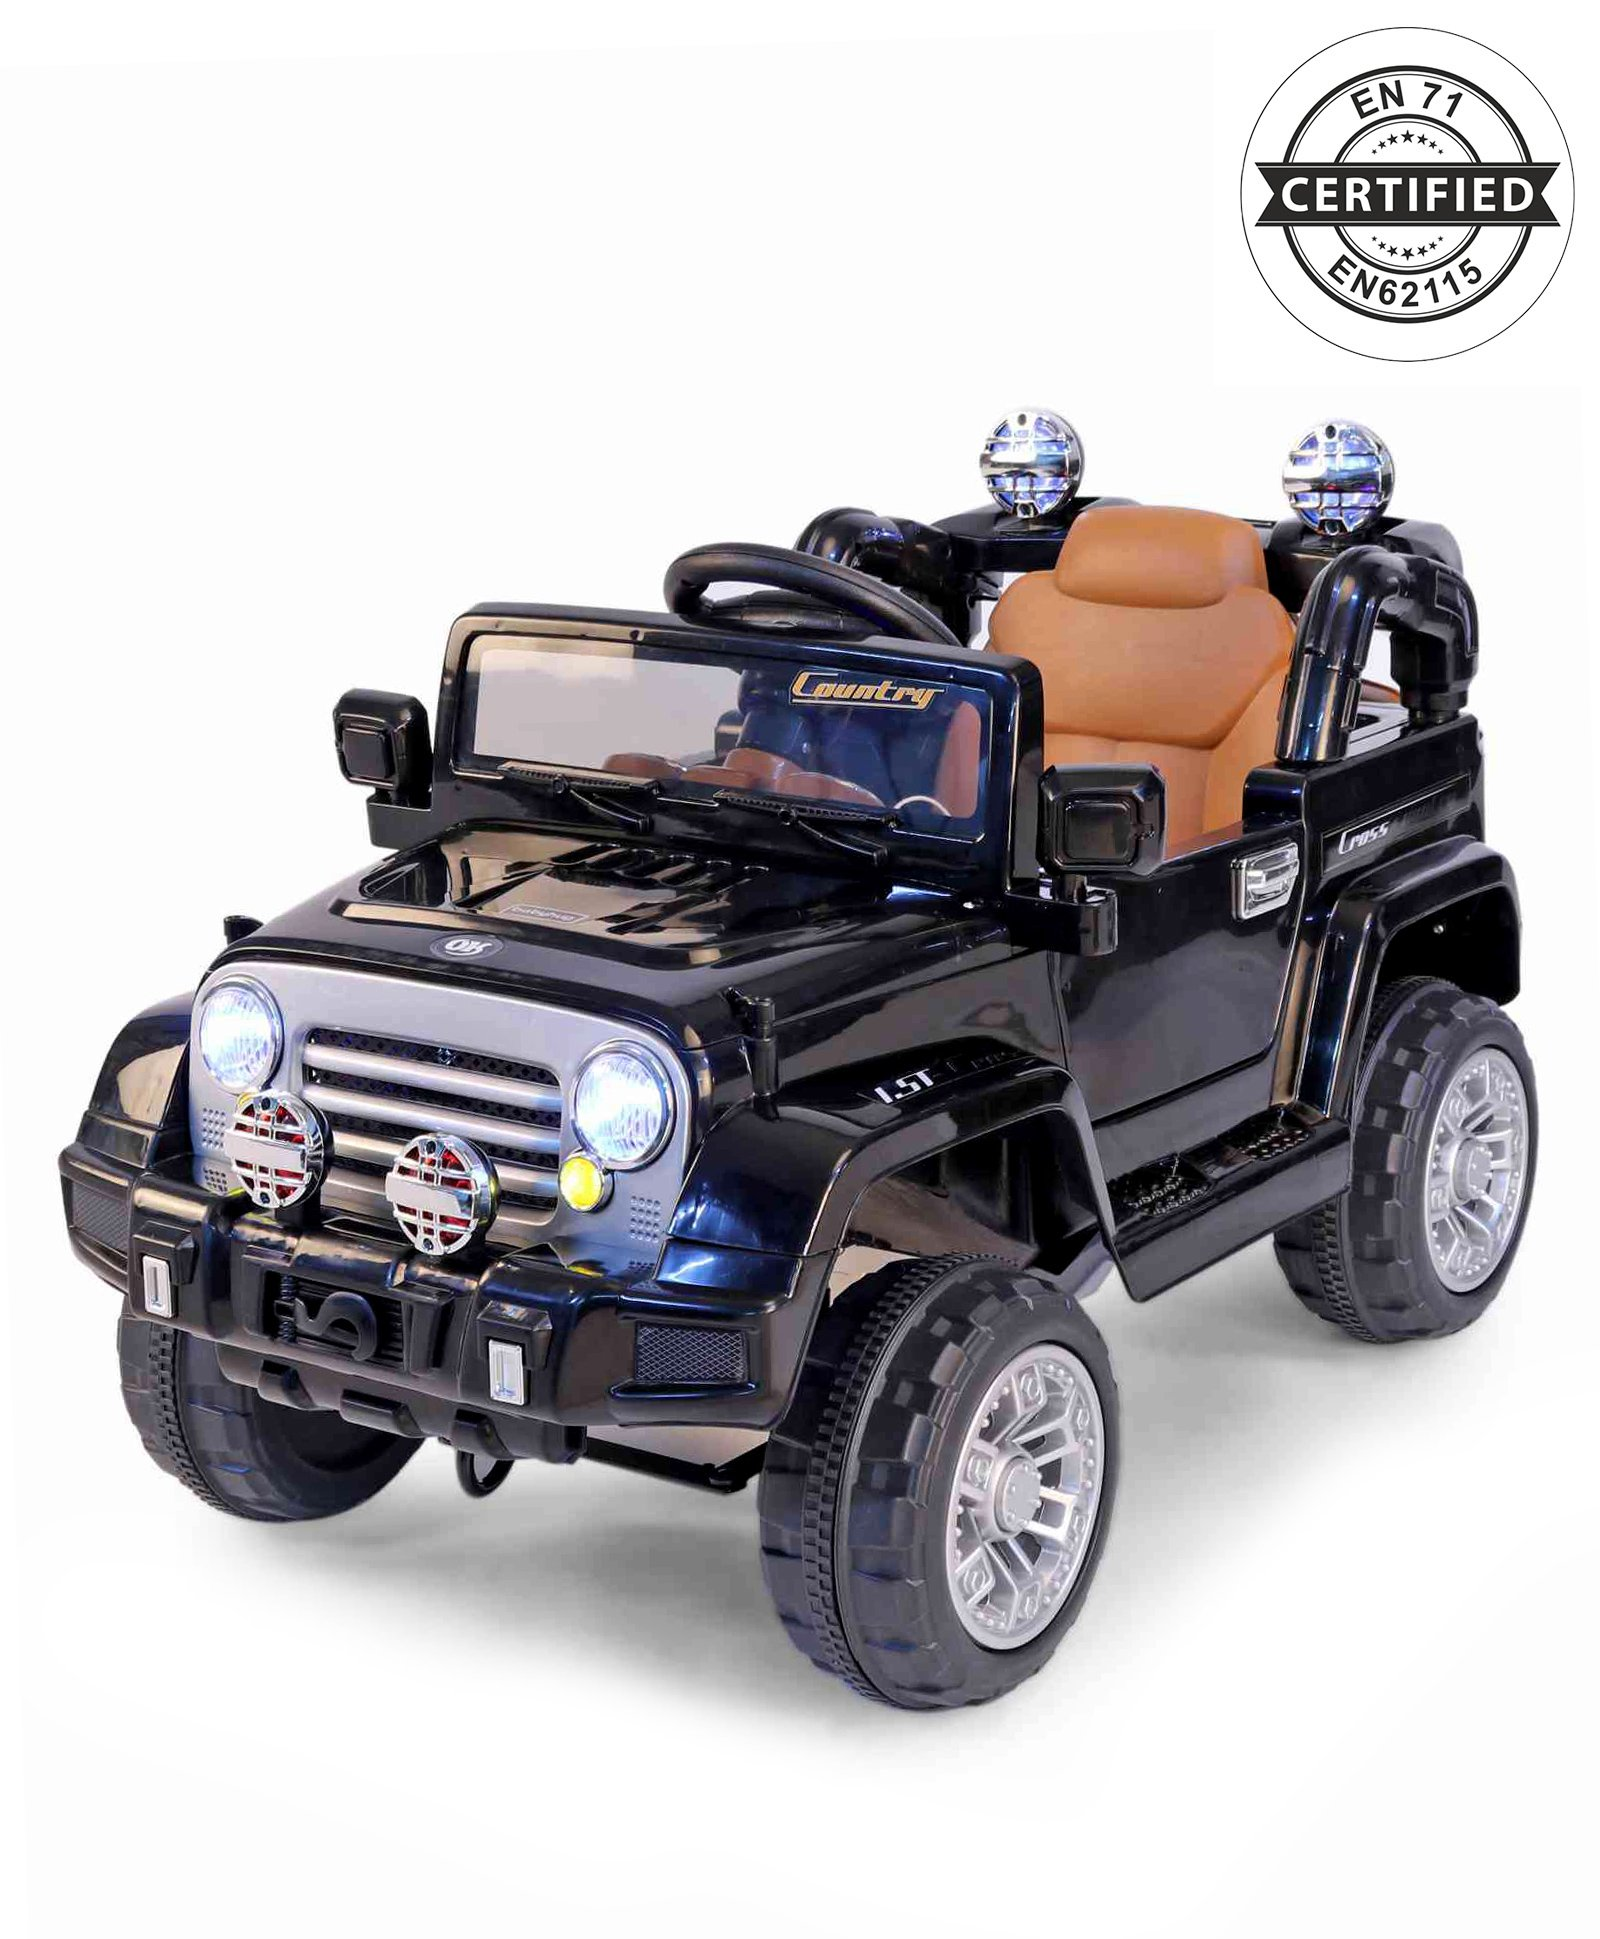 Babyhug Battery Operated Ride On Jeep With Parental Remote Control Black Online In India Buy At Best Price From Firstcry Com 1893389